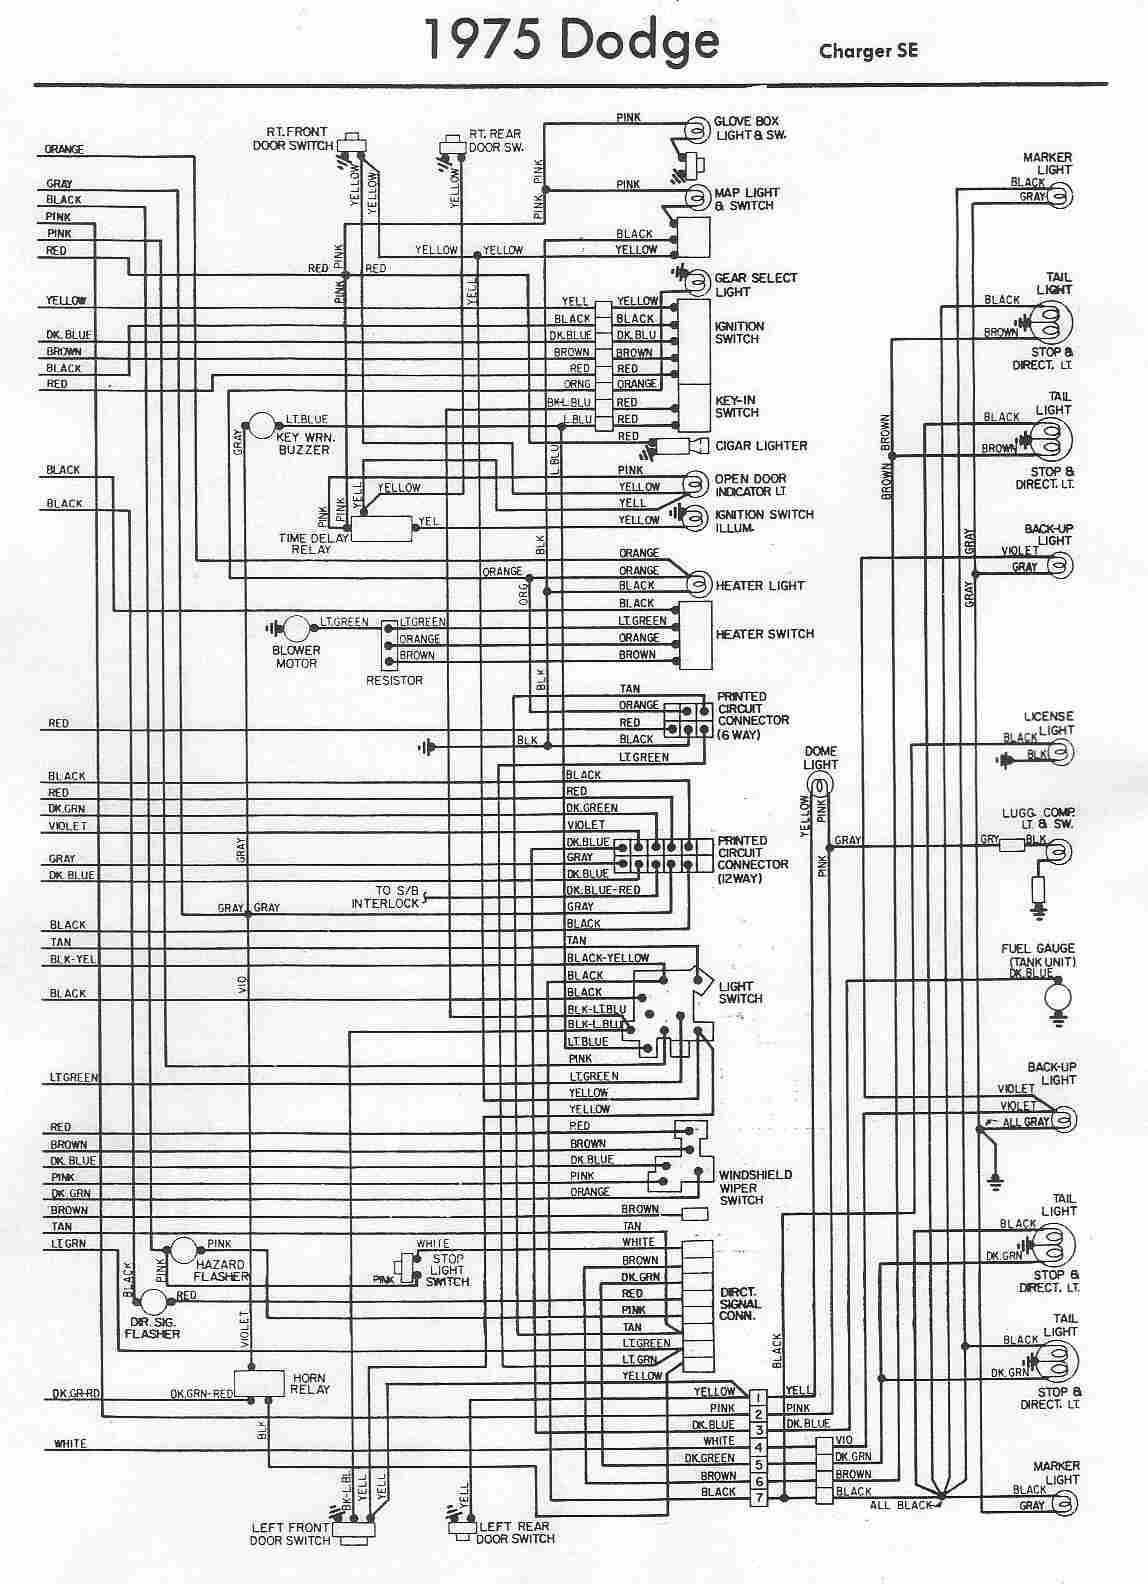 Dodge Car Manuals Wiring Diagrams Pdf Fault Codes Peugeot Download